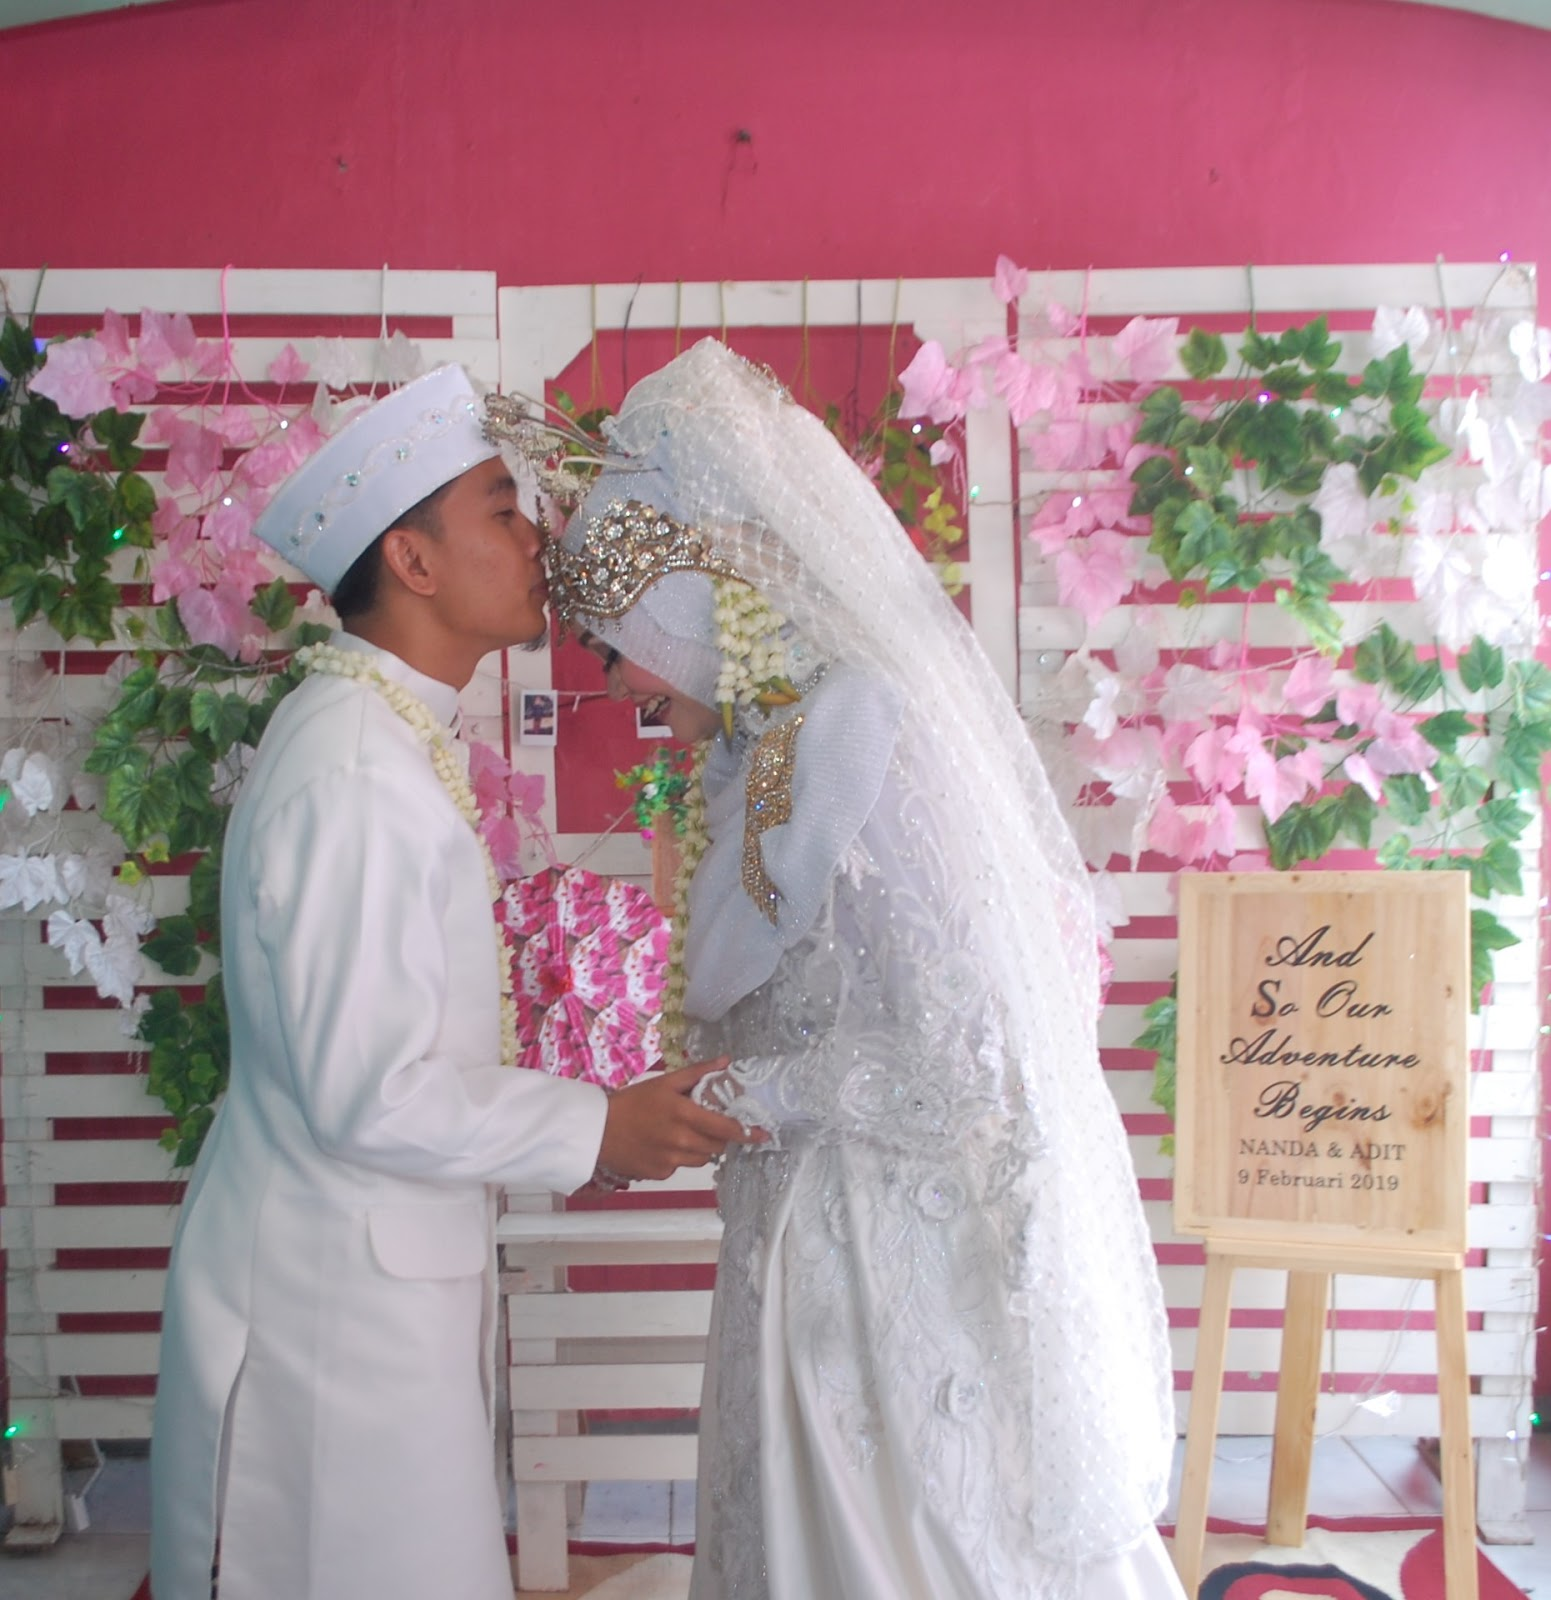 How We Met My Wedding Stories Syarat Menikah Beda